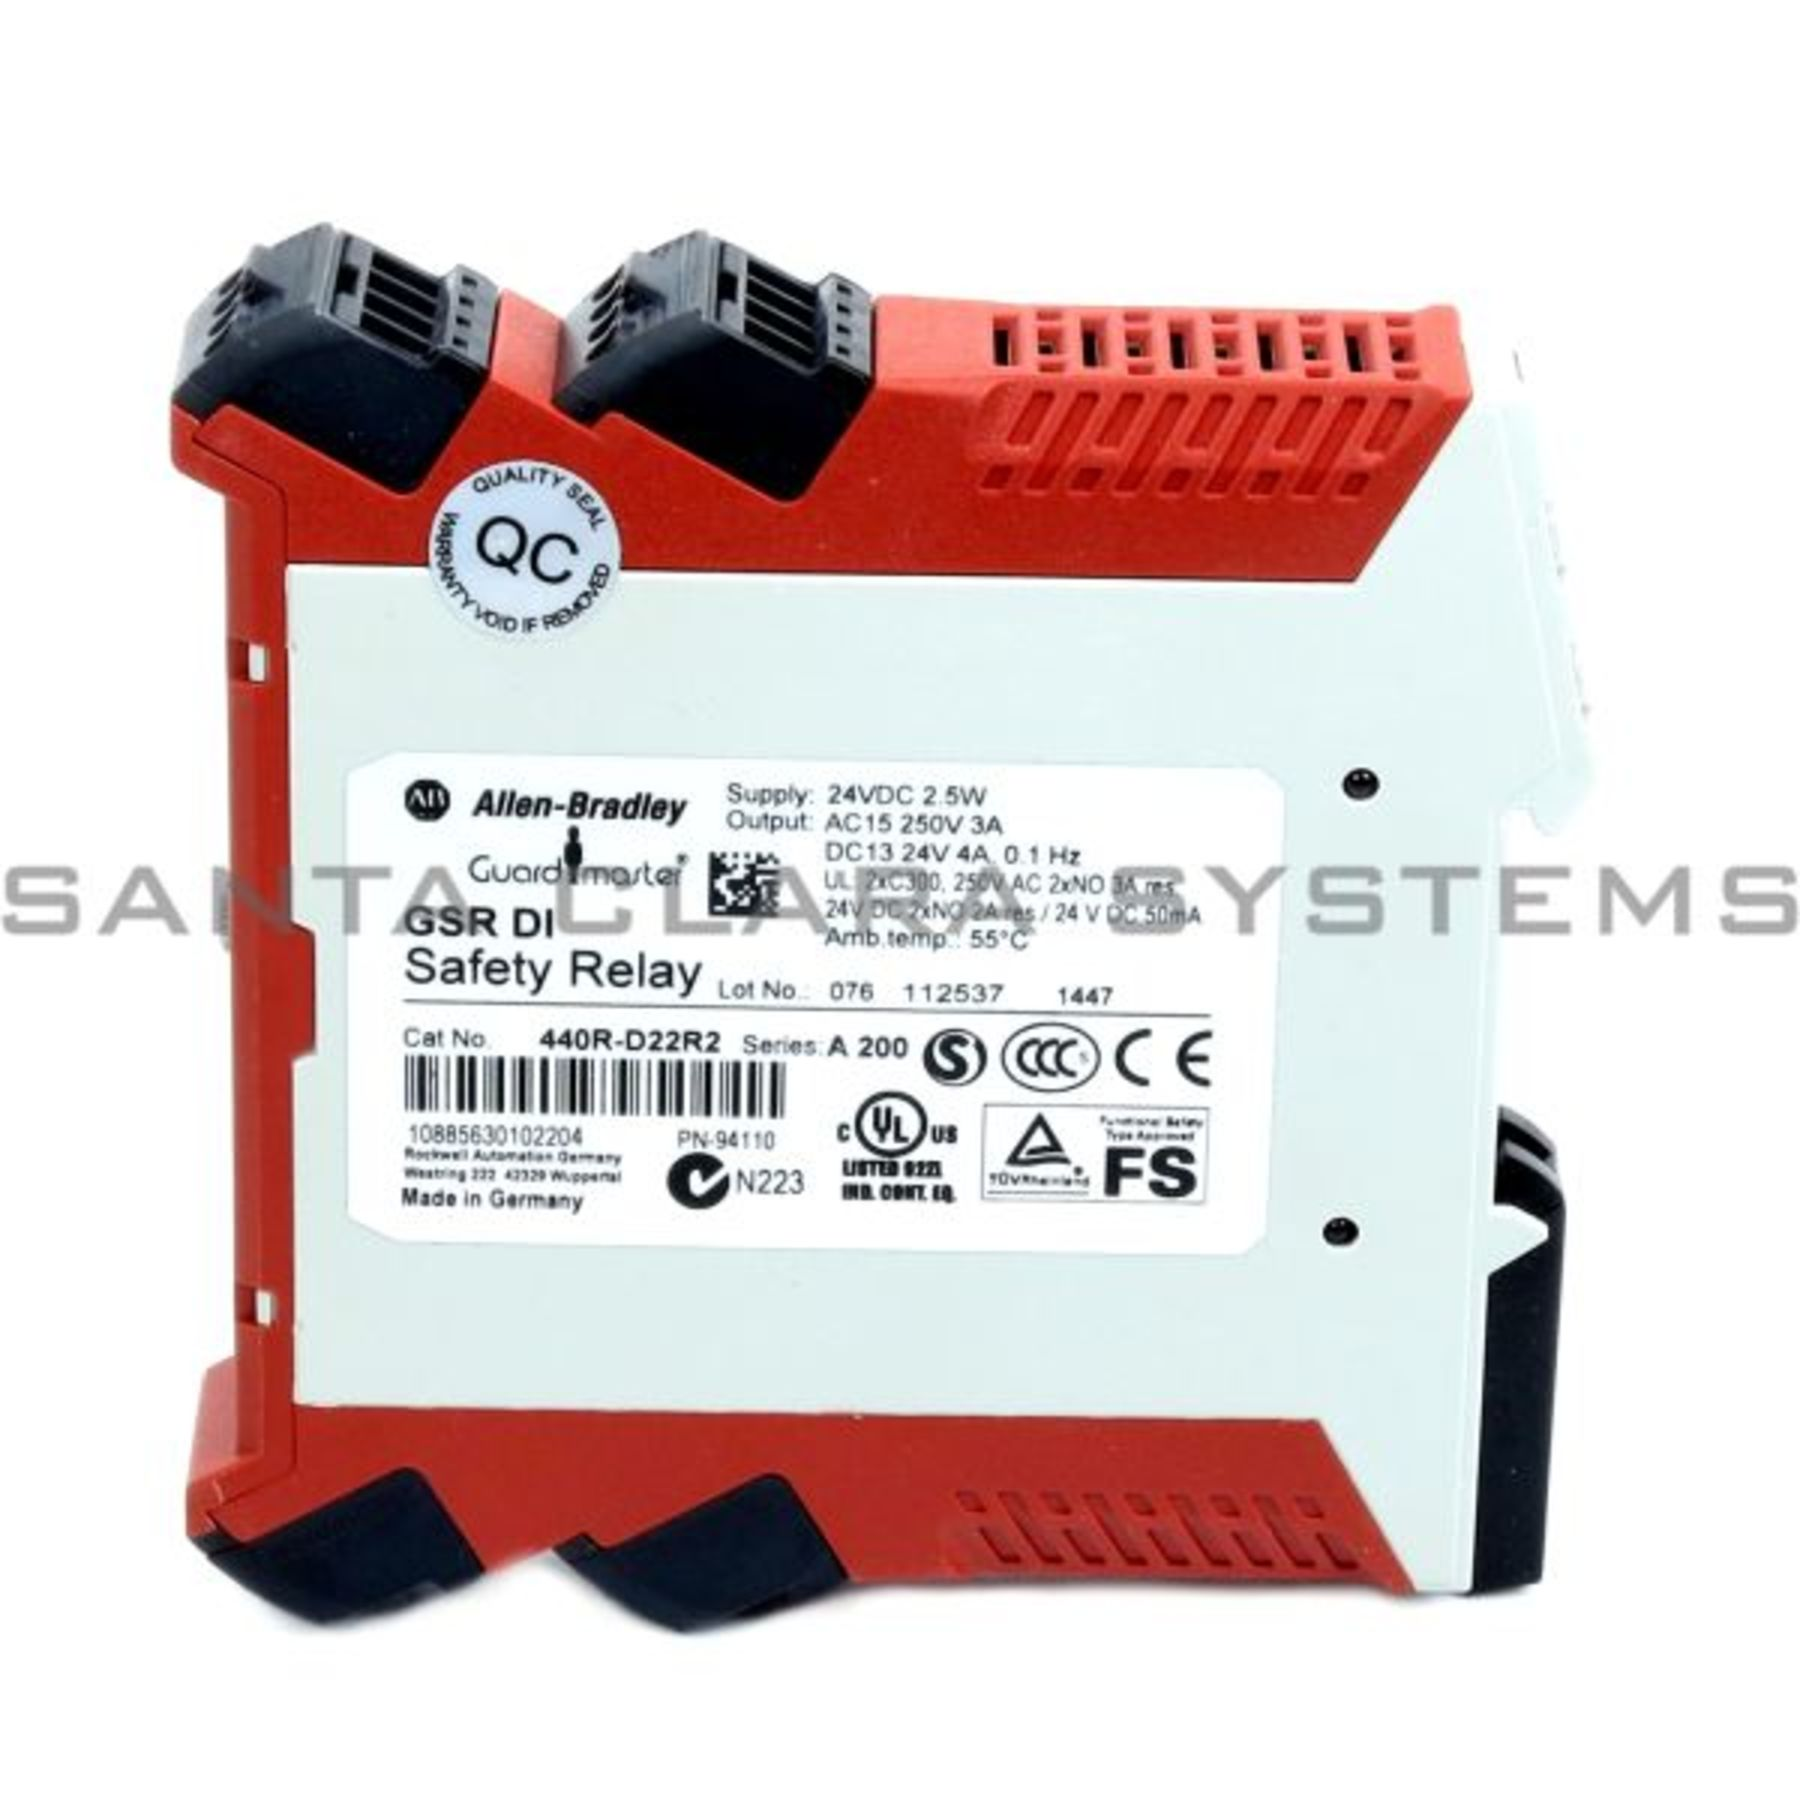 allen bradley 440r-d22r2 safety relay | guardmaster product image